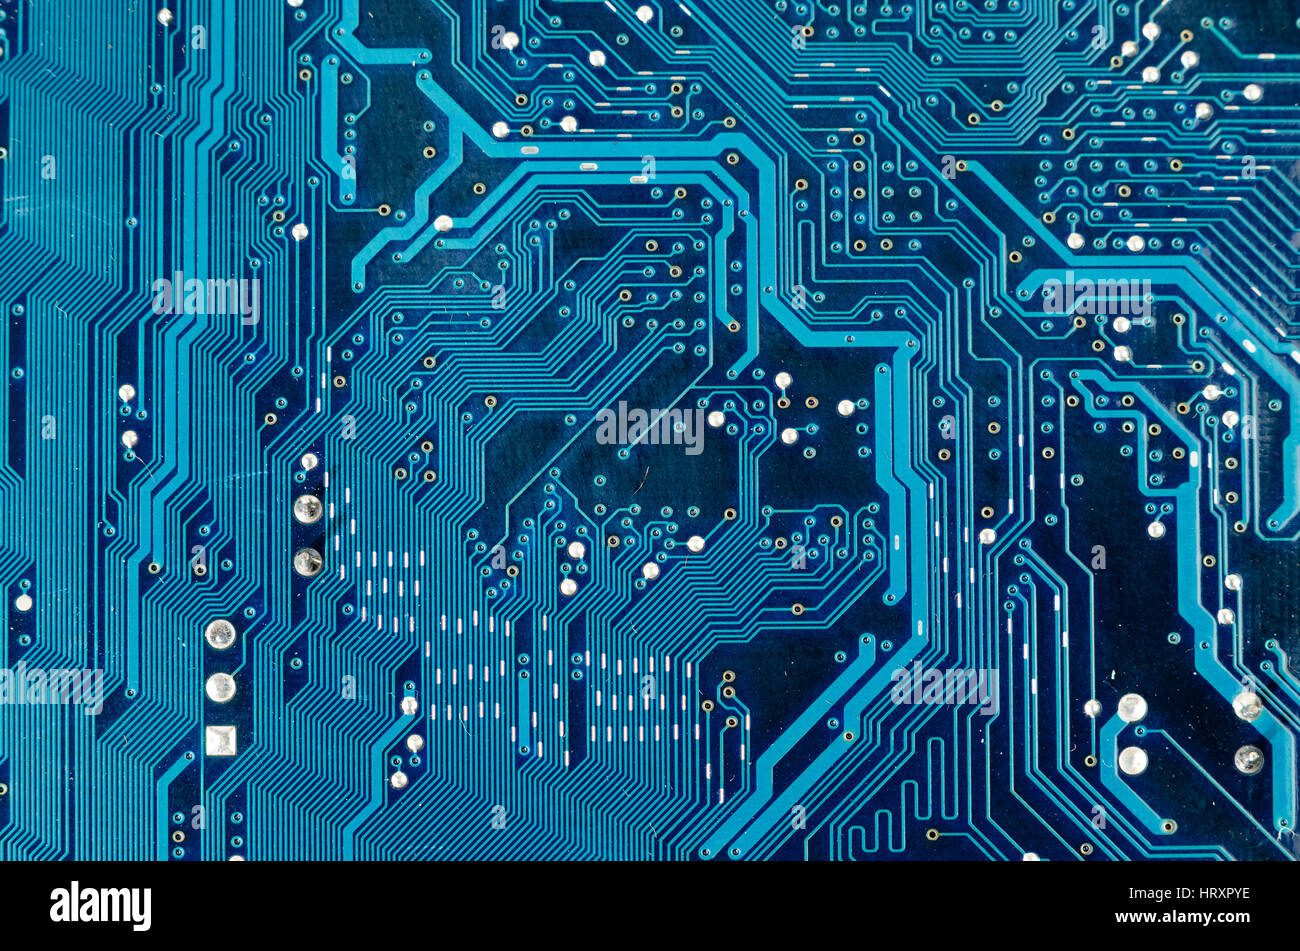 Electronic circuit plate background blue Stock Photo: 135198434 - Alamy